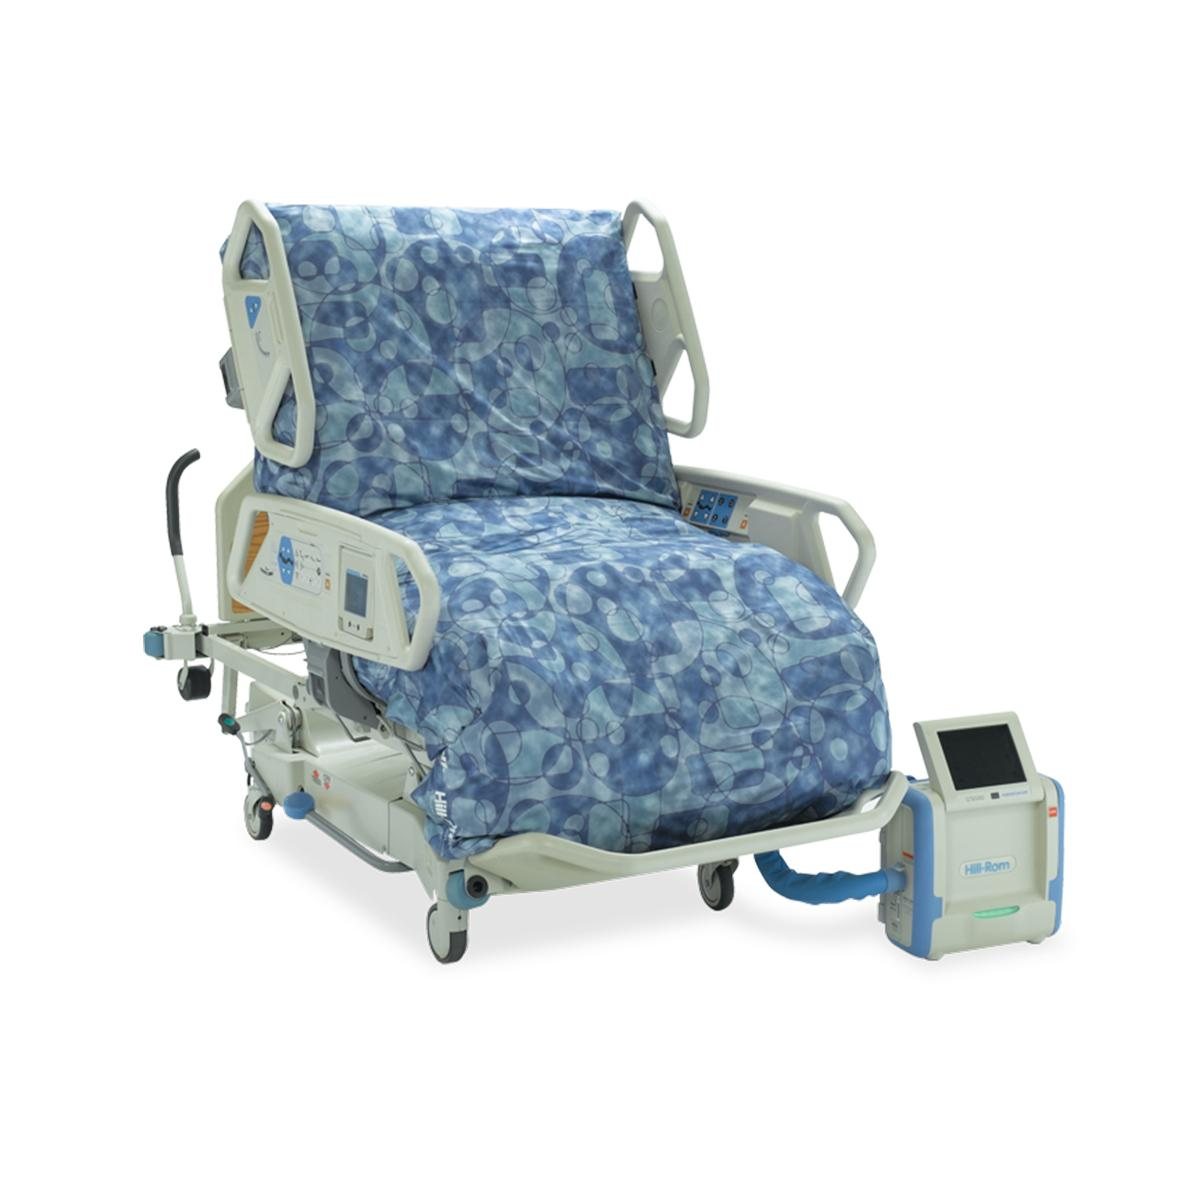 Envision® E700 Therapy Surface diagonal view in chair configuration